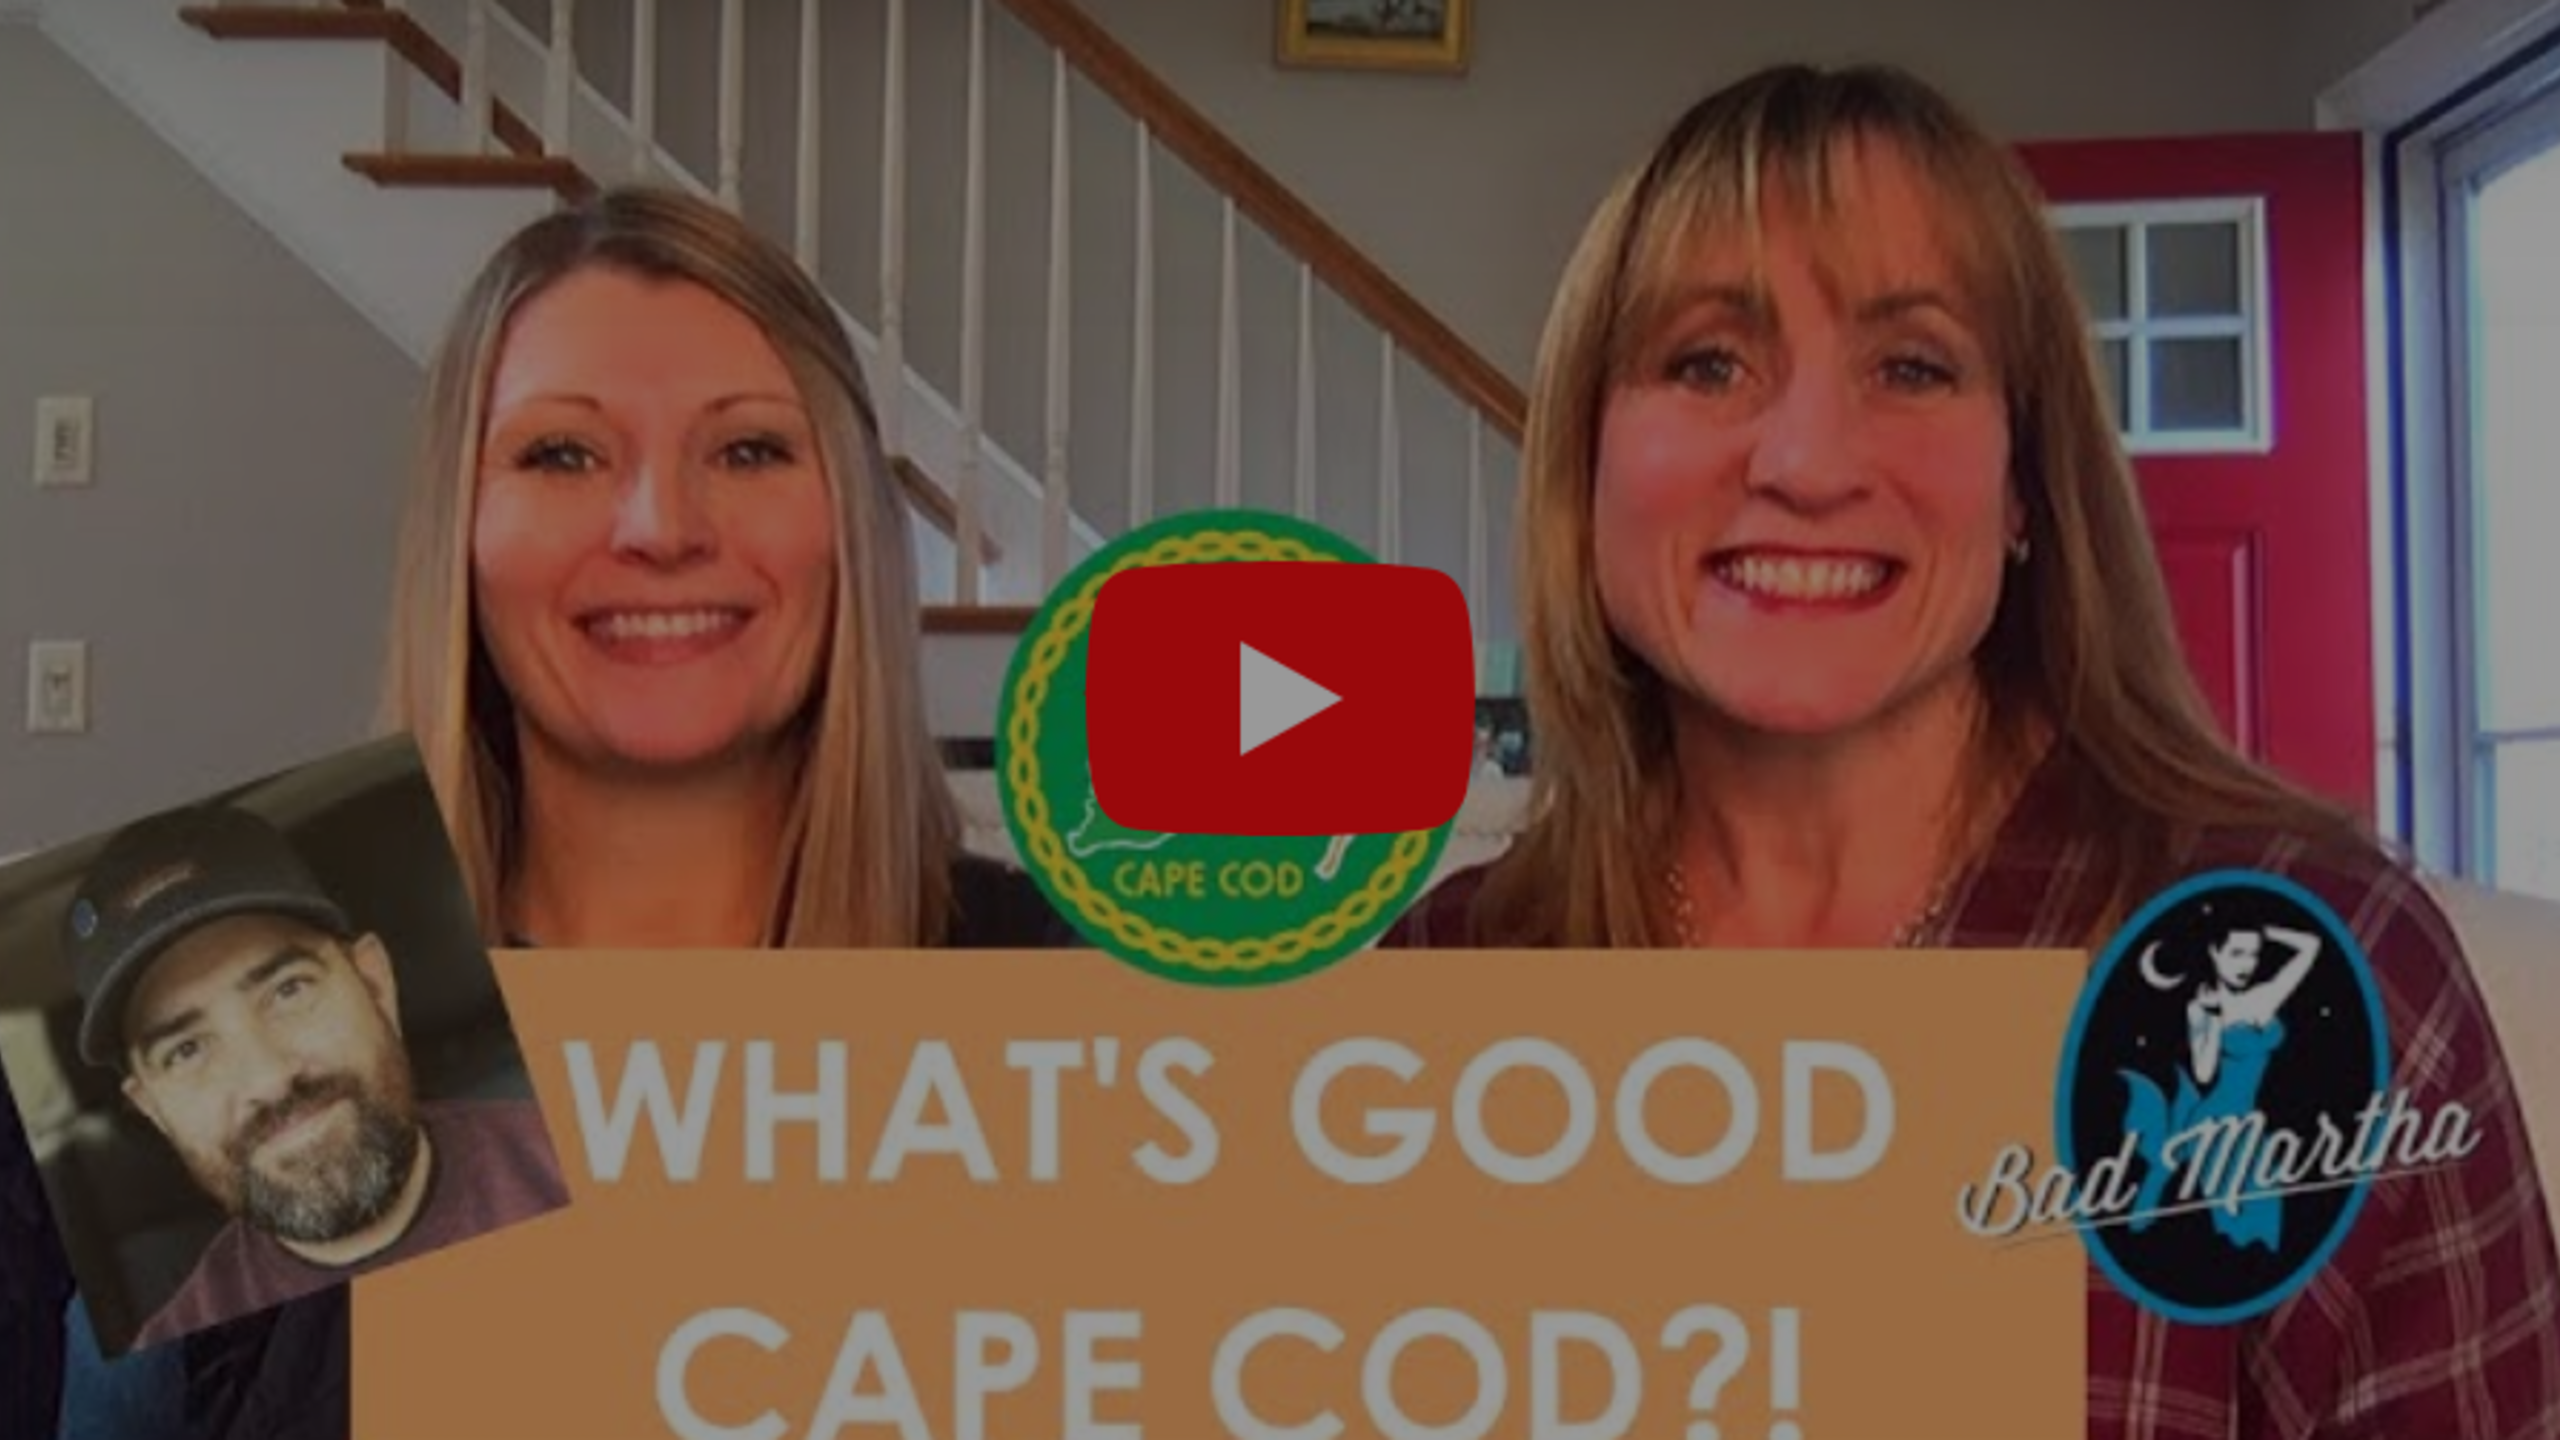 Episode 82: What's Good Cape Cod?! February 2020